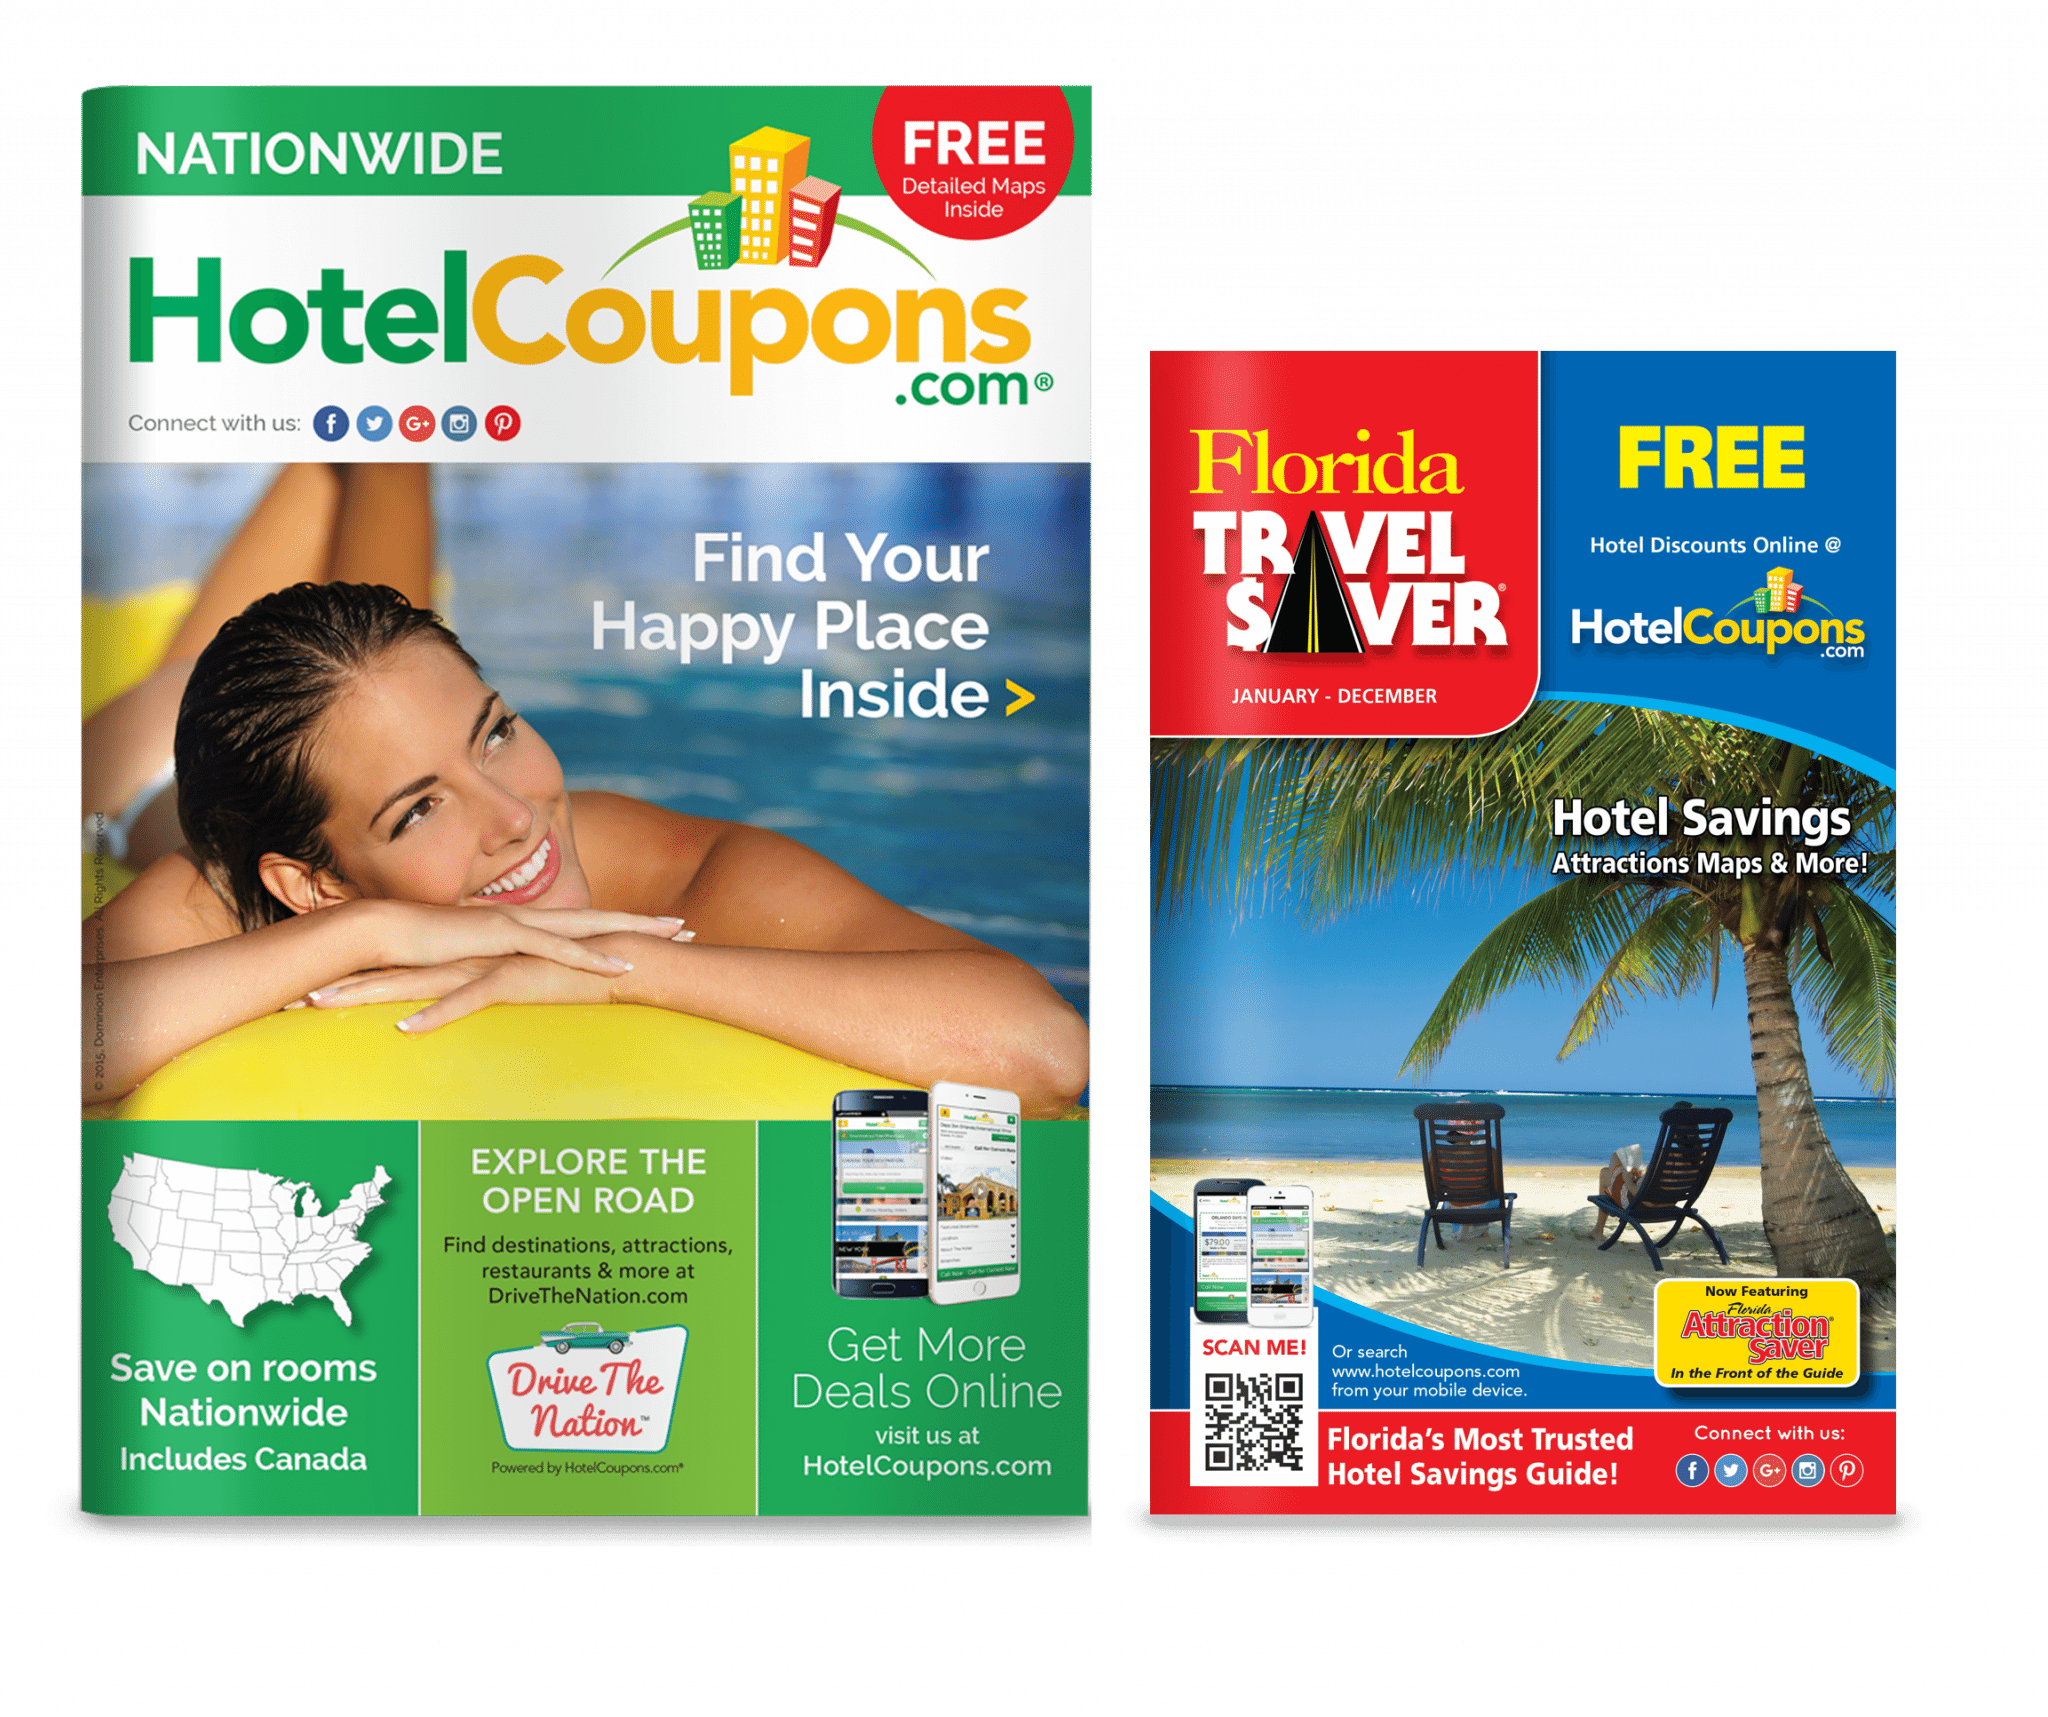 Hotel tonight coupon code